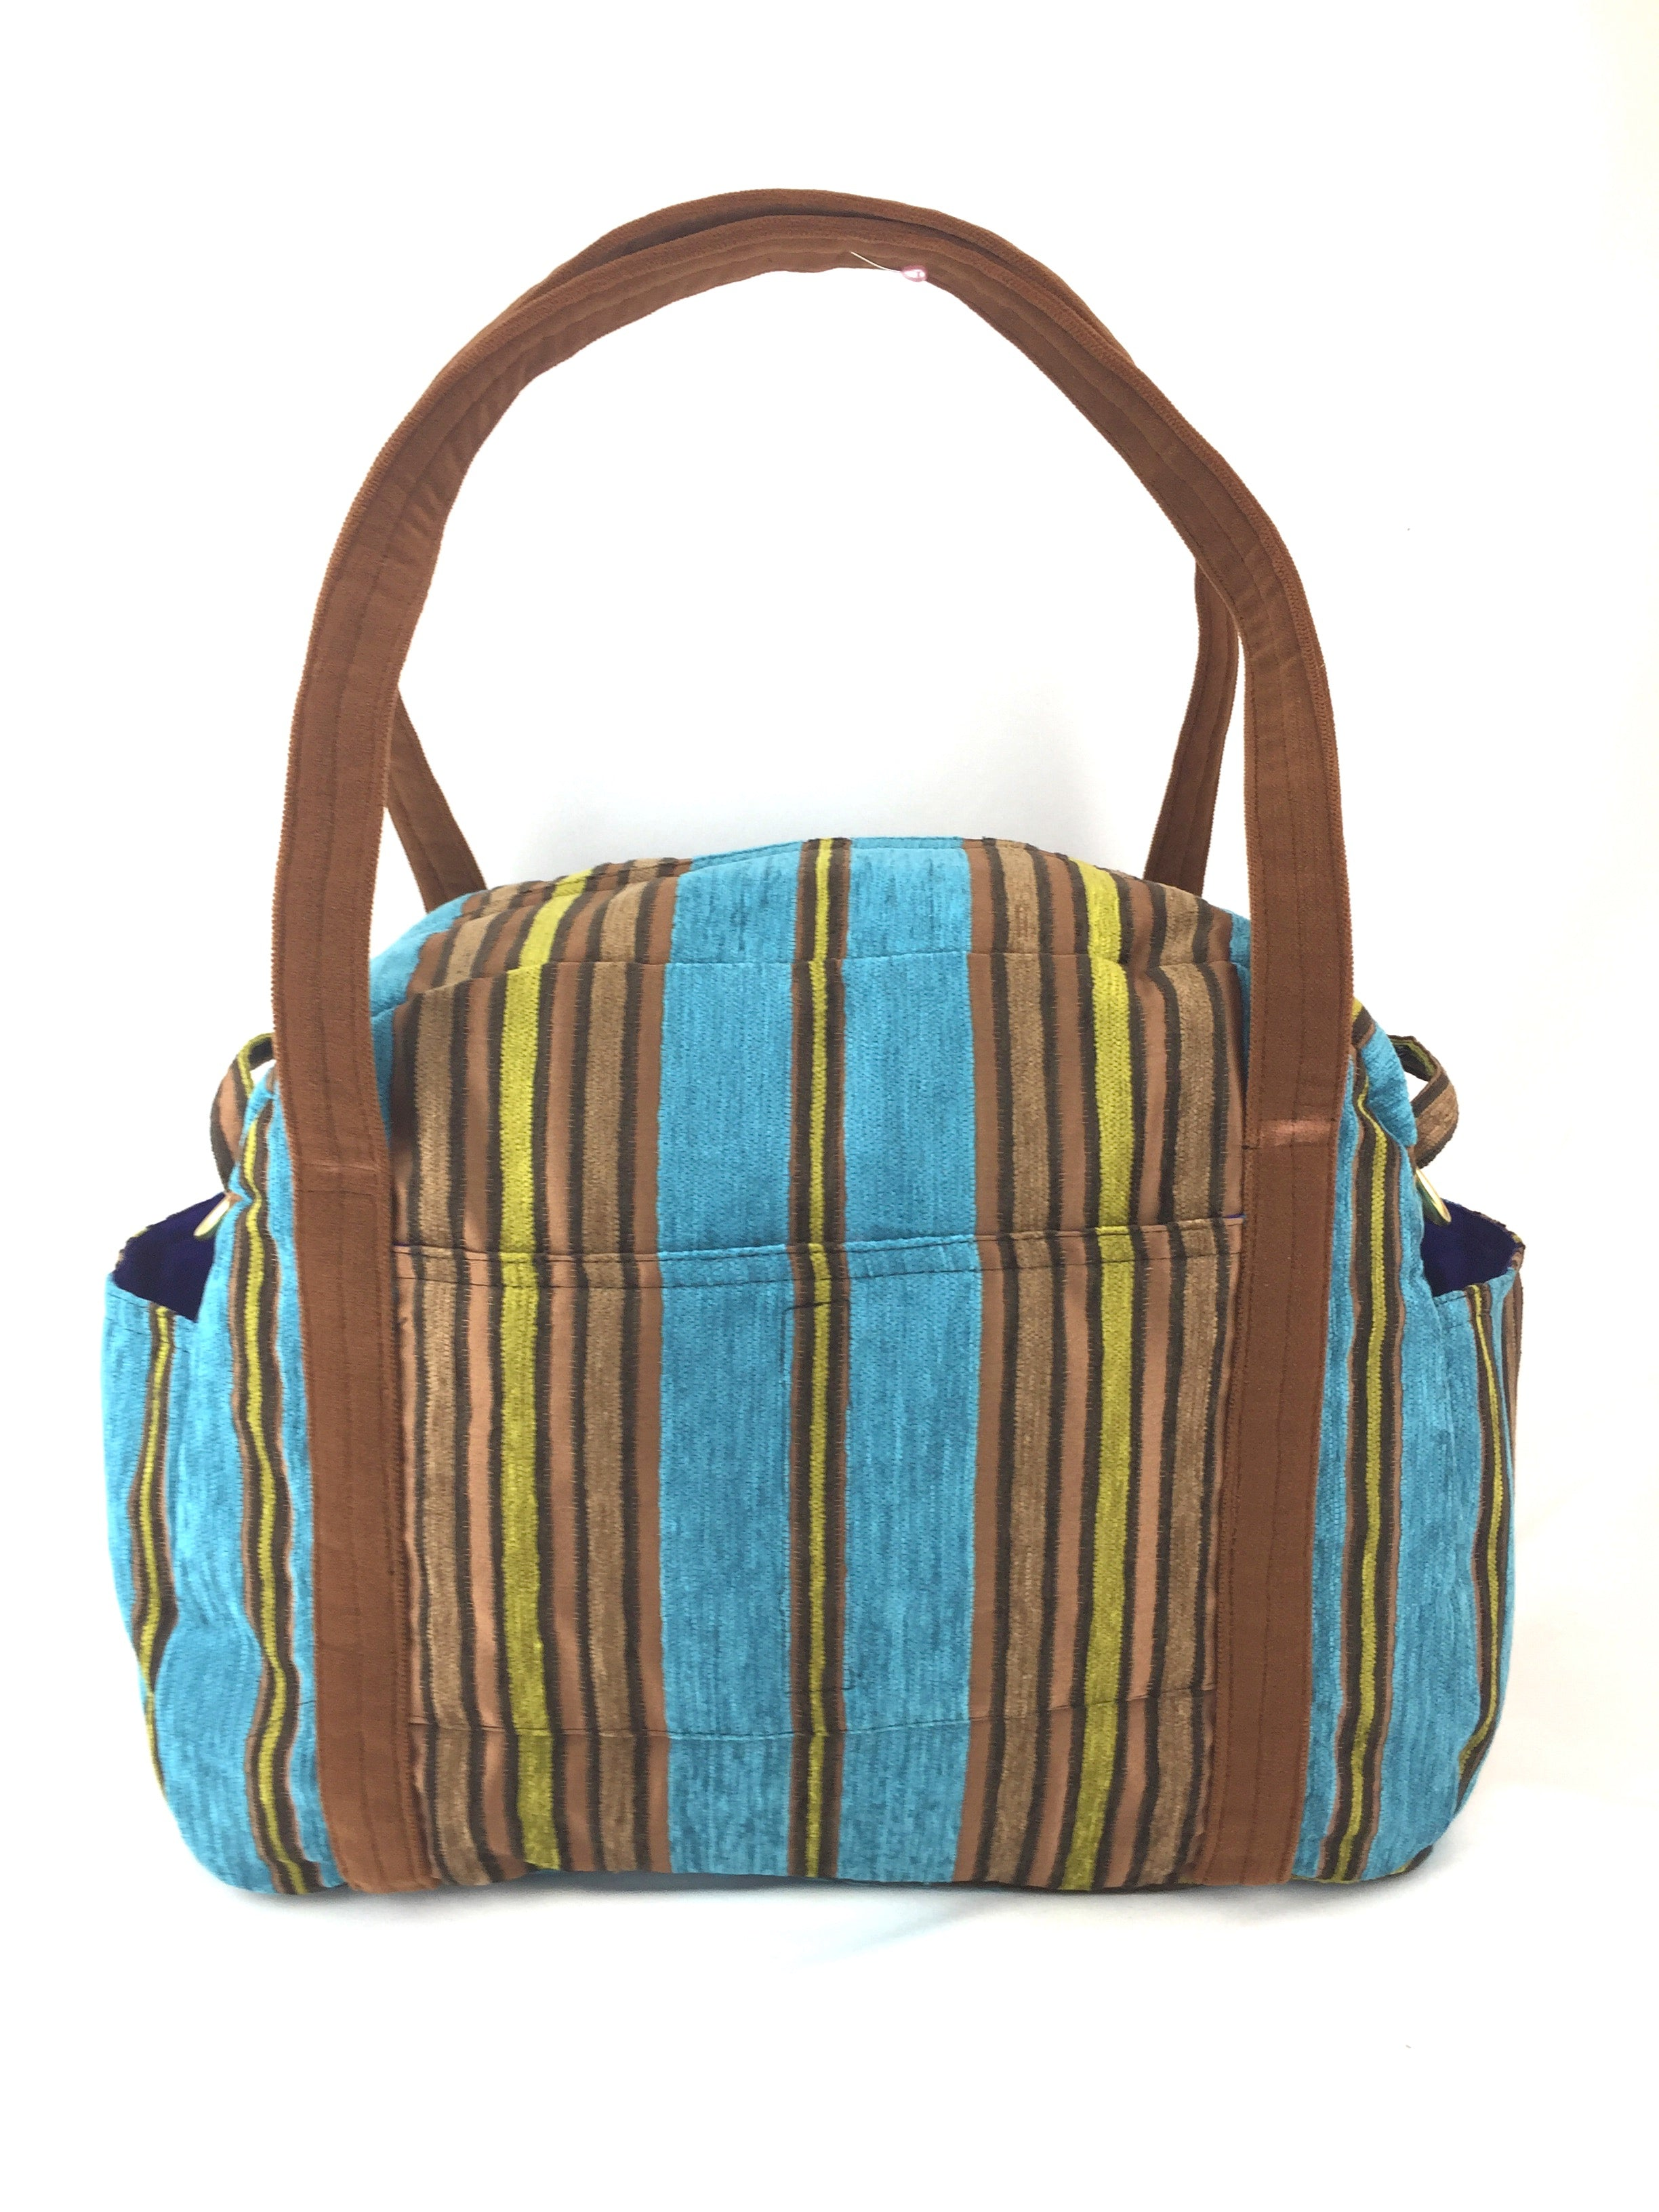 Turquoise & Wood Holly Carry-On Bag